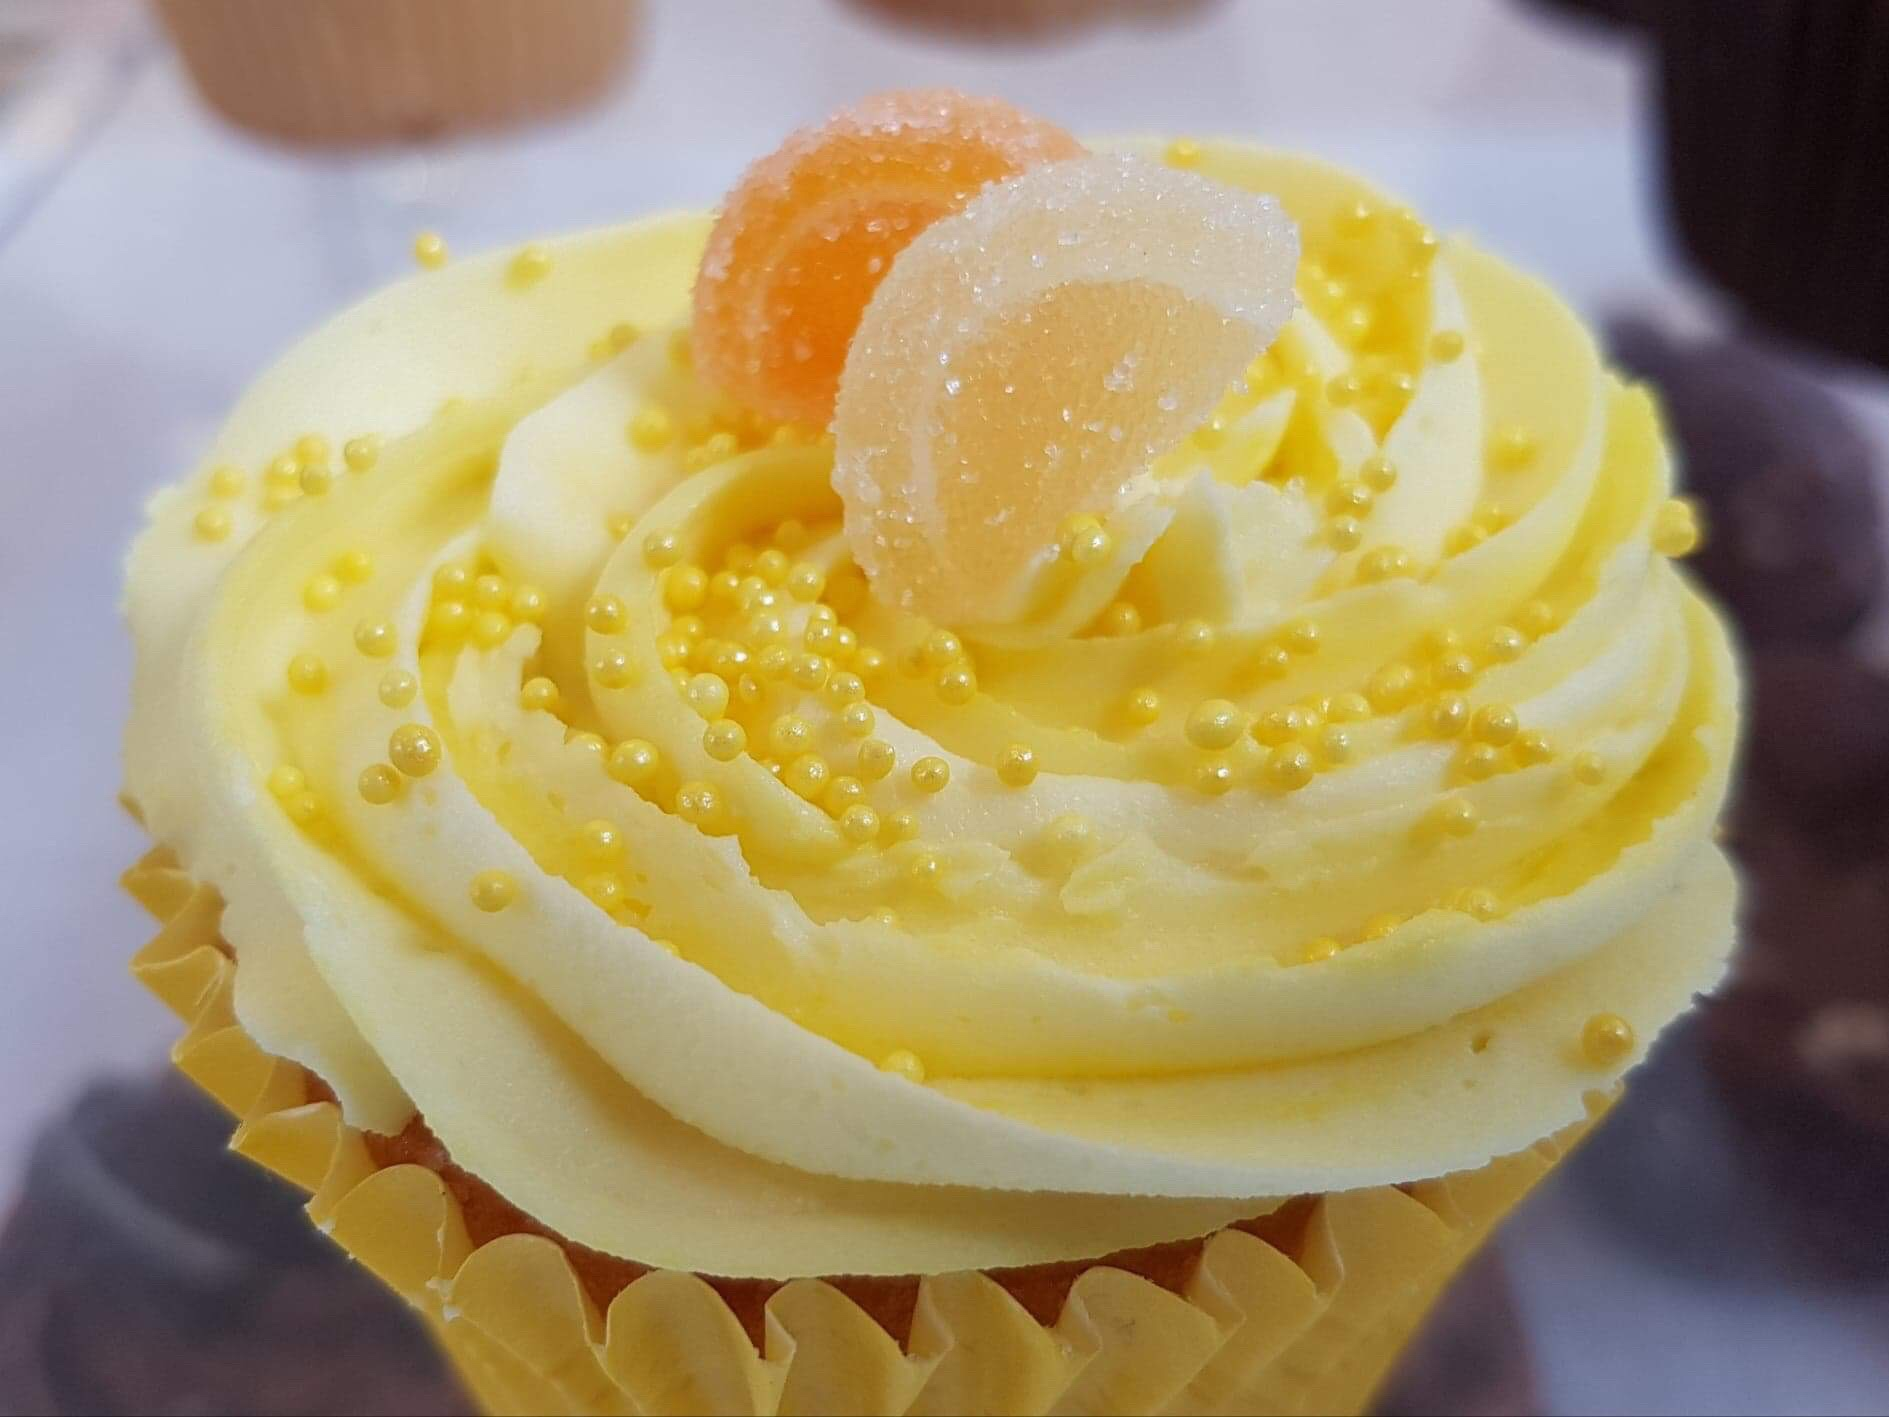 Zesty lemon Cupcake with zest in the sponge finished off with a smooth lemon buttercream